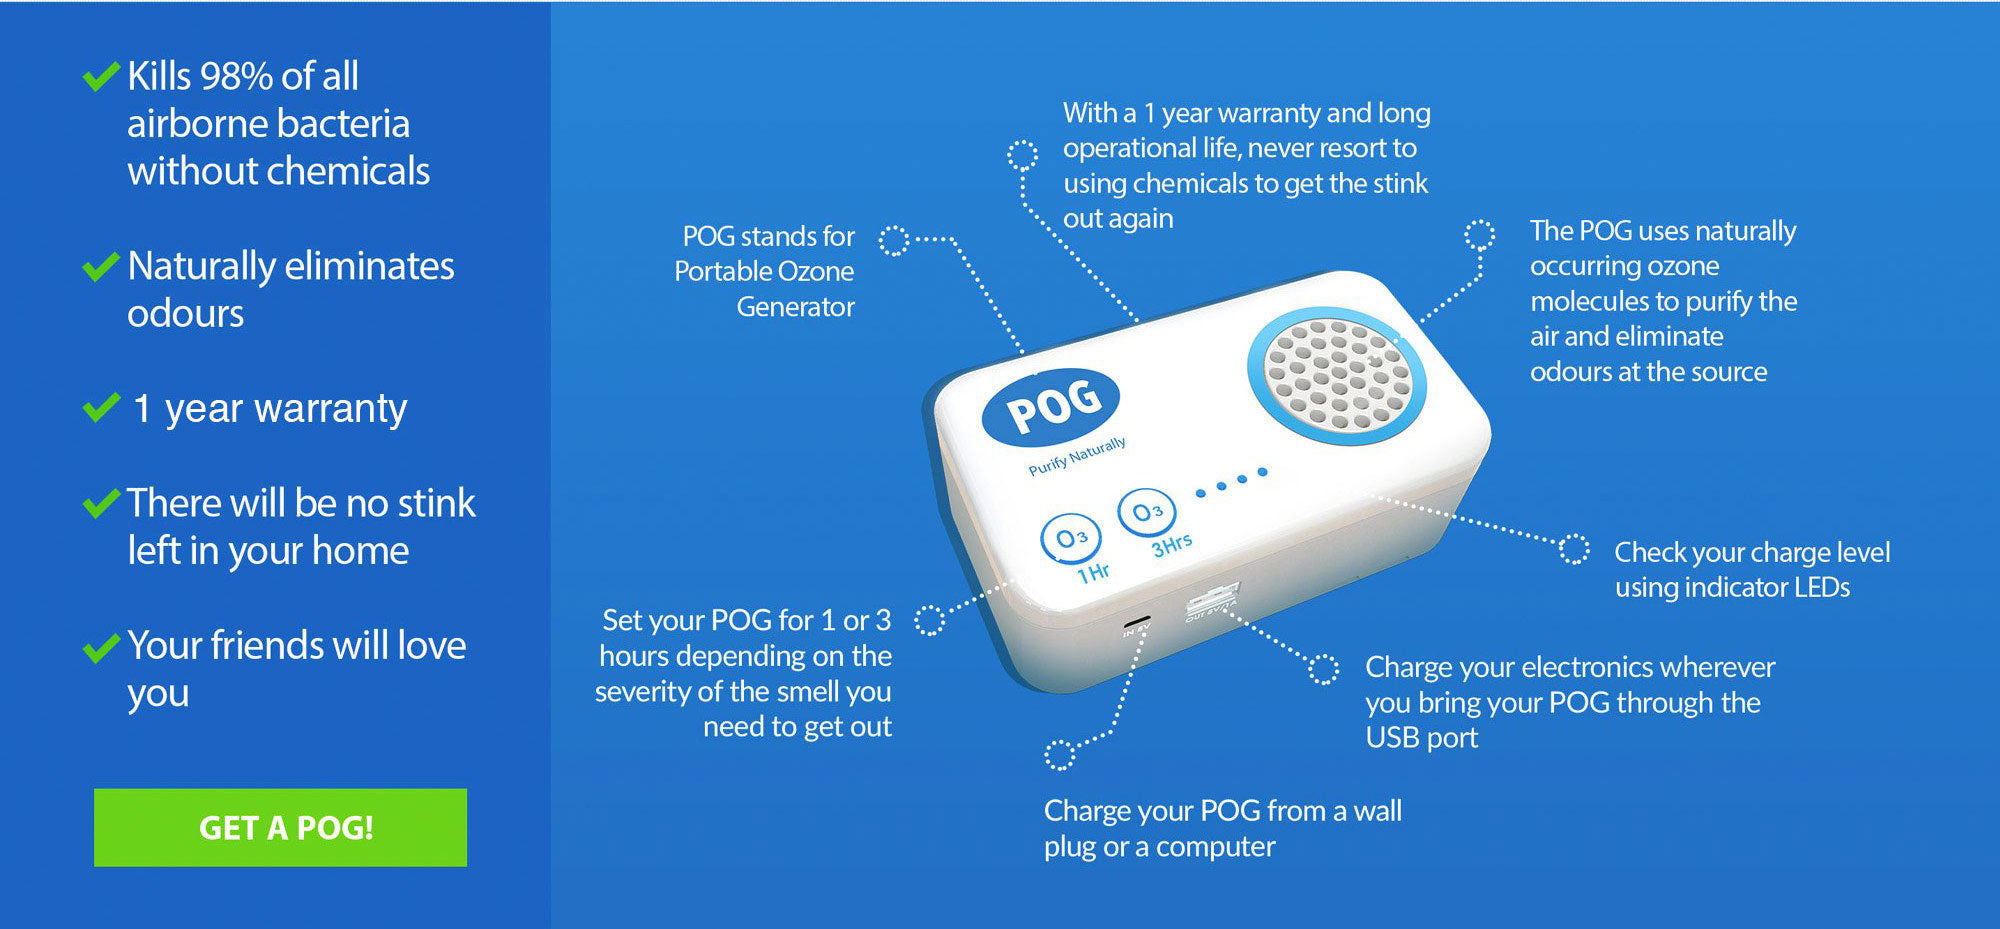 The POG | Portable Ozone Generator